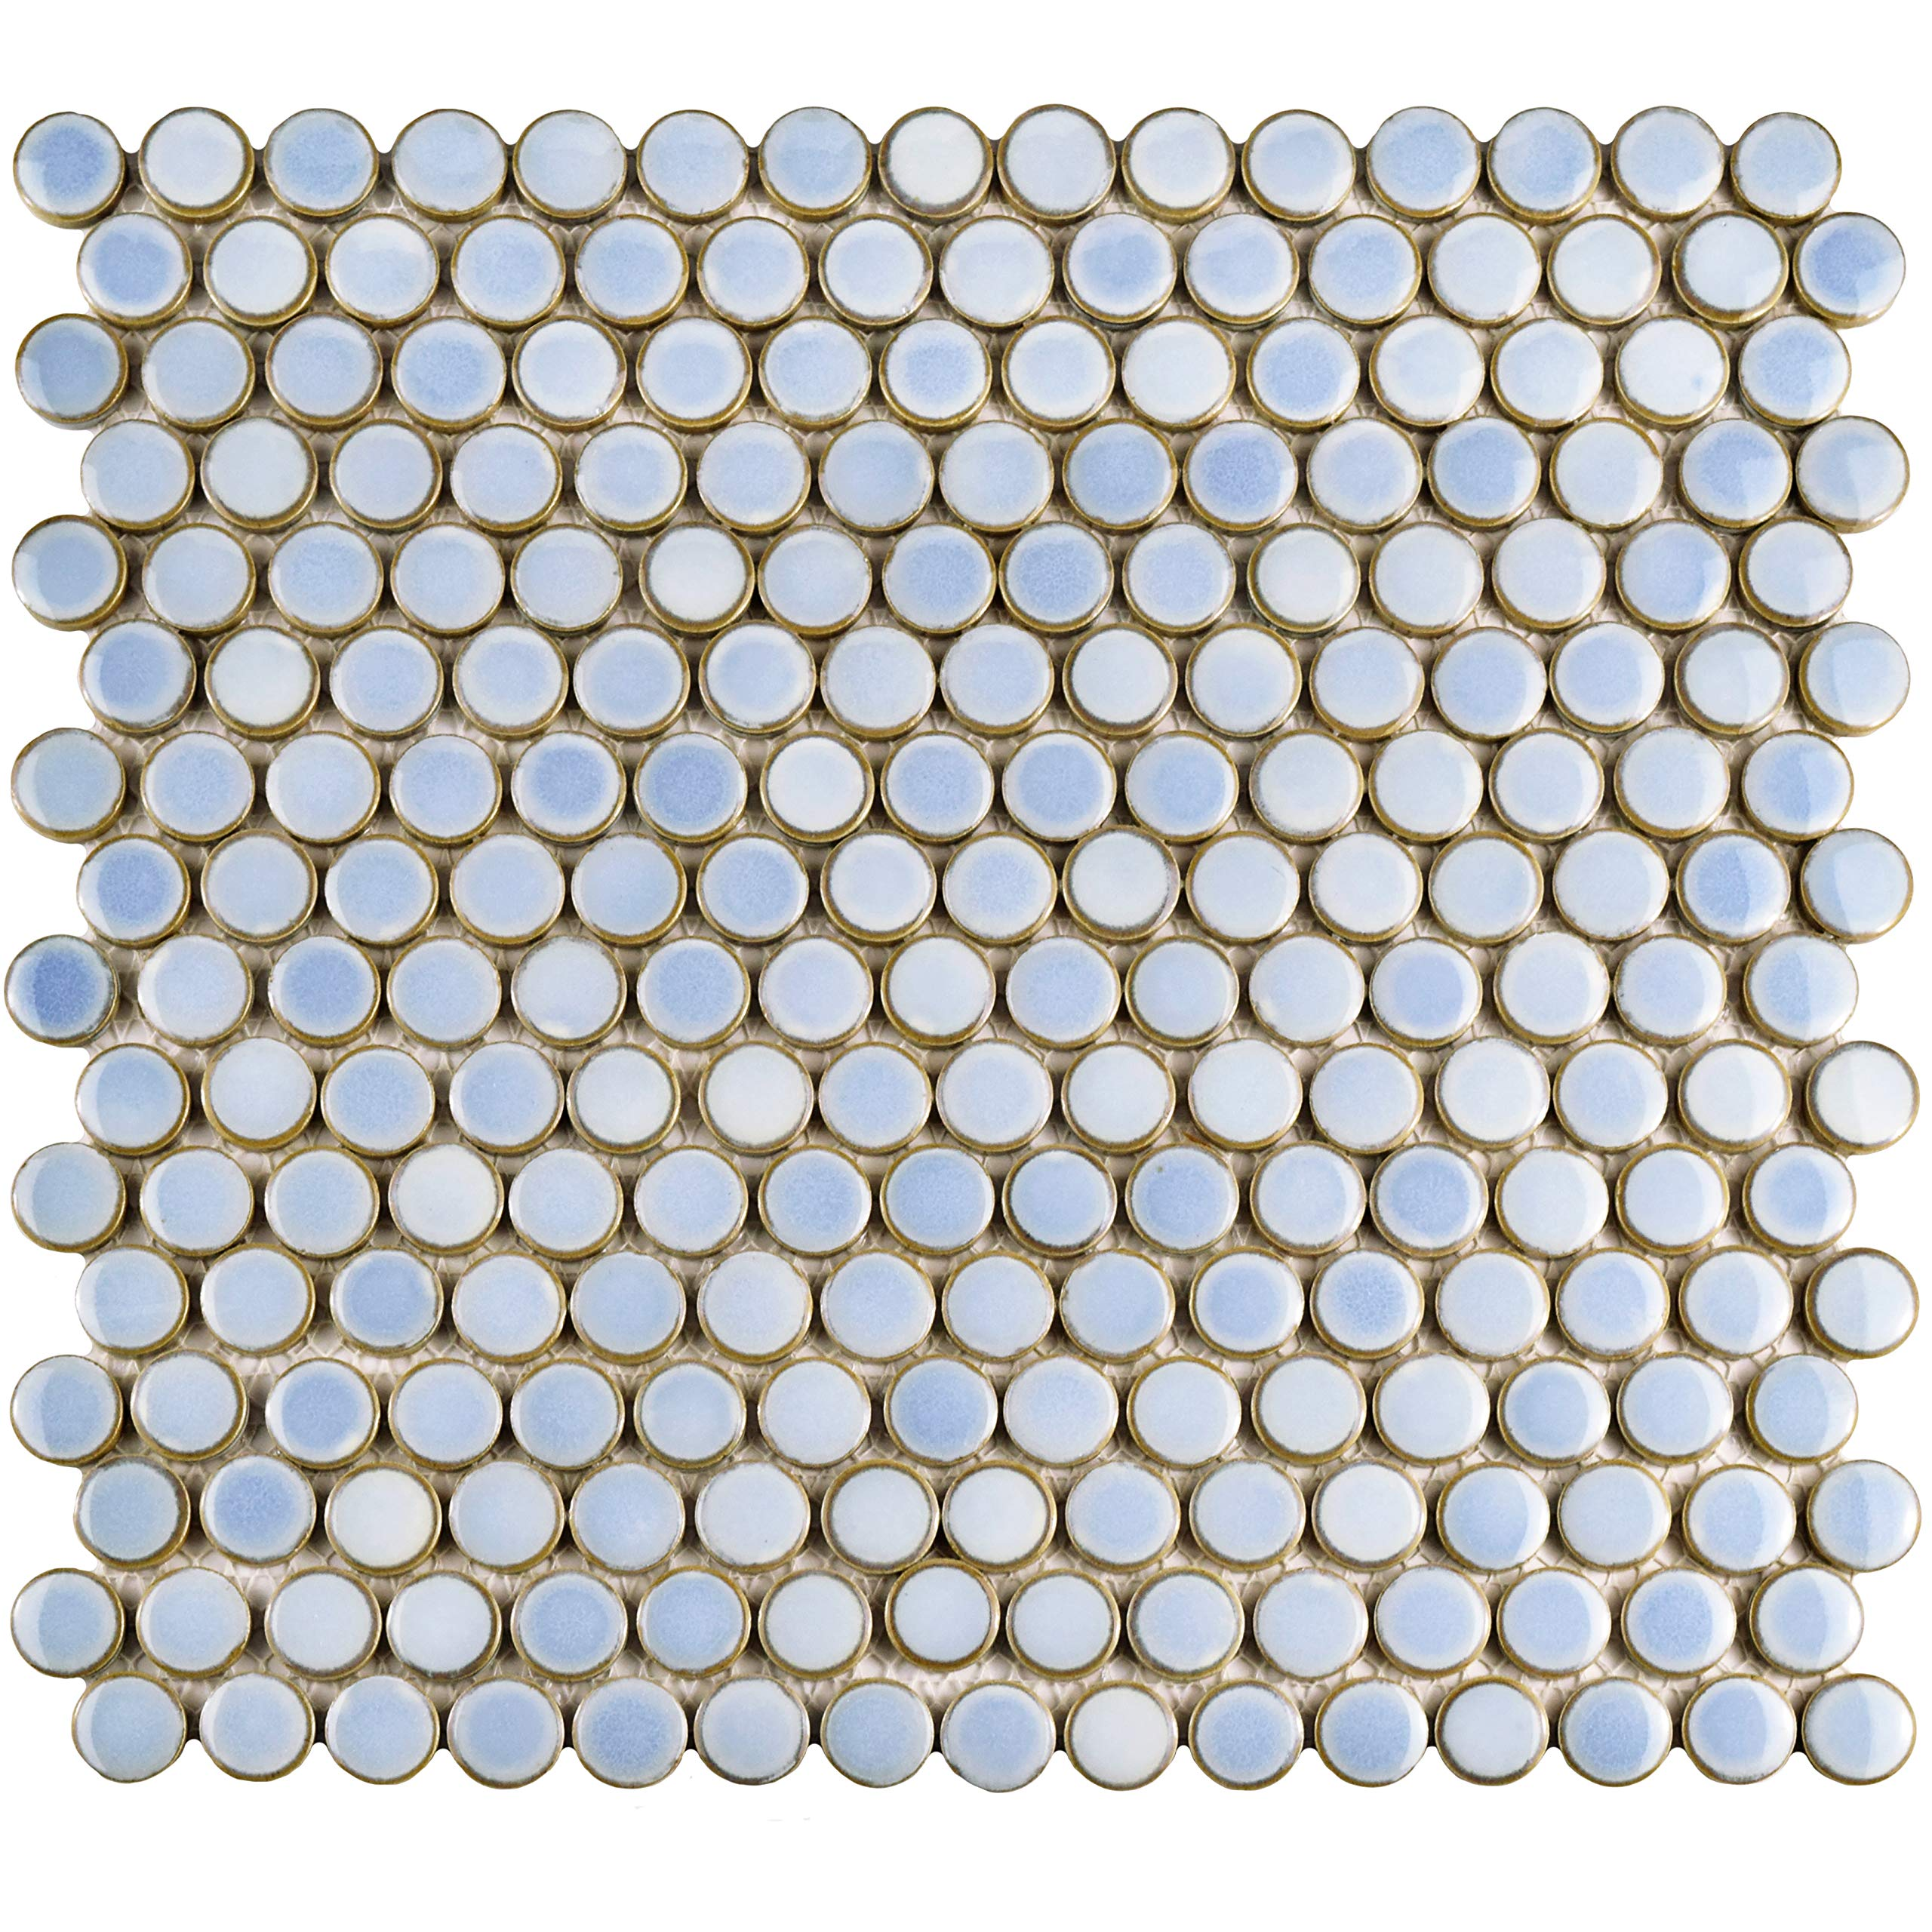 SomerTile FKOMPR14 Penny Porcelain Mosaic Floor and Wall, 12'' x 12.625'', Frost Blue/Brown Tile, 10 Piece